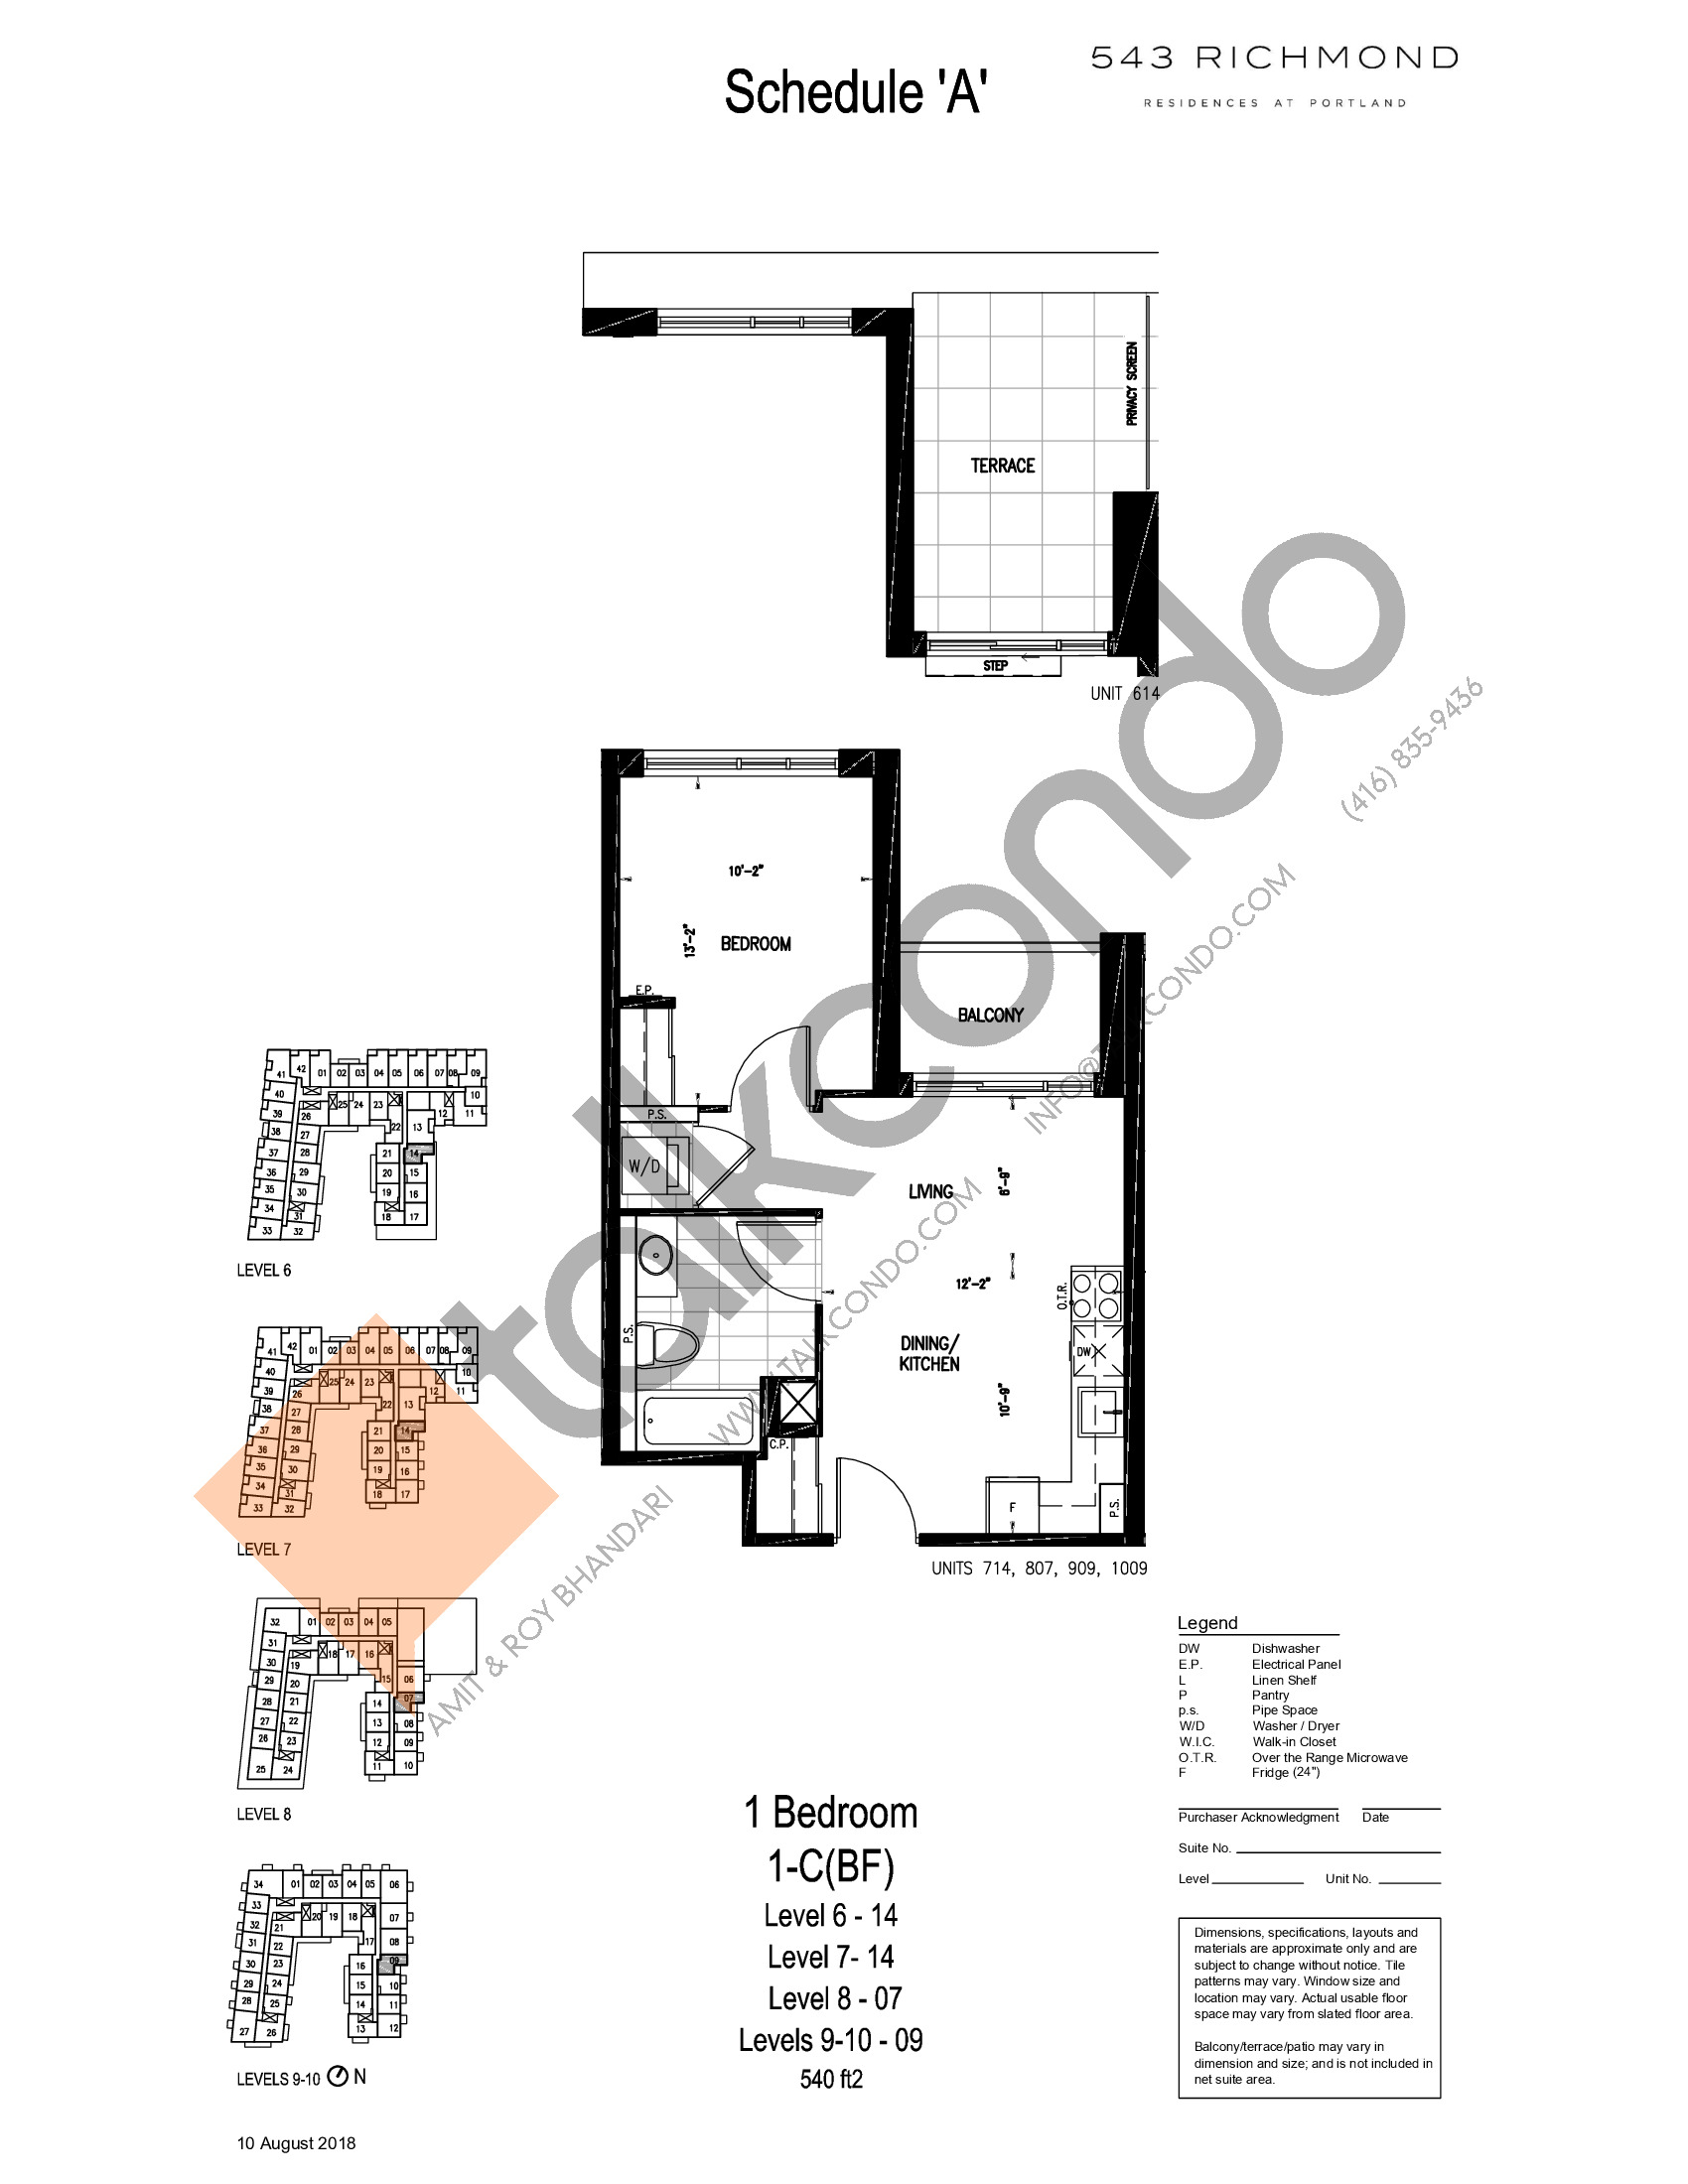 1-C(BF) Floor Plan at 543 Richmond St Condos - 540 sq.ft